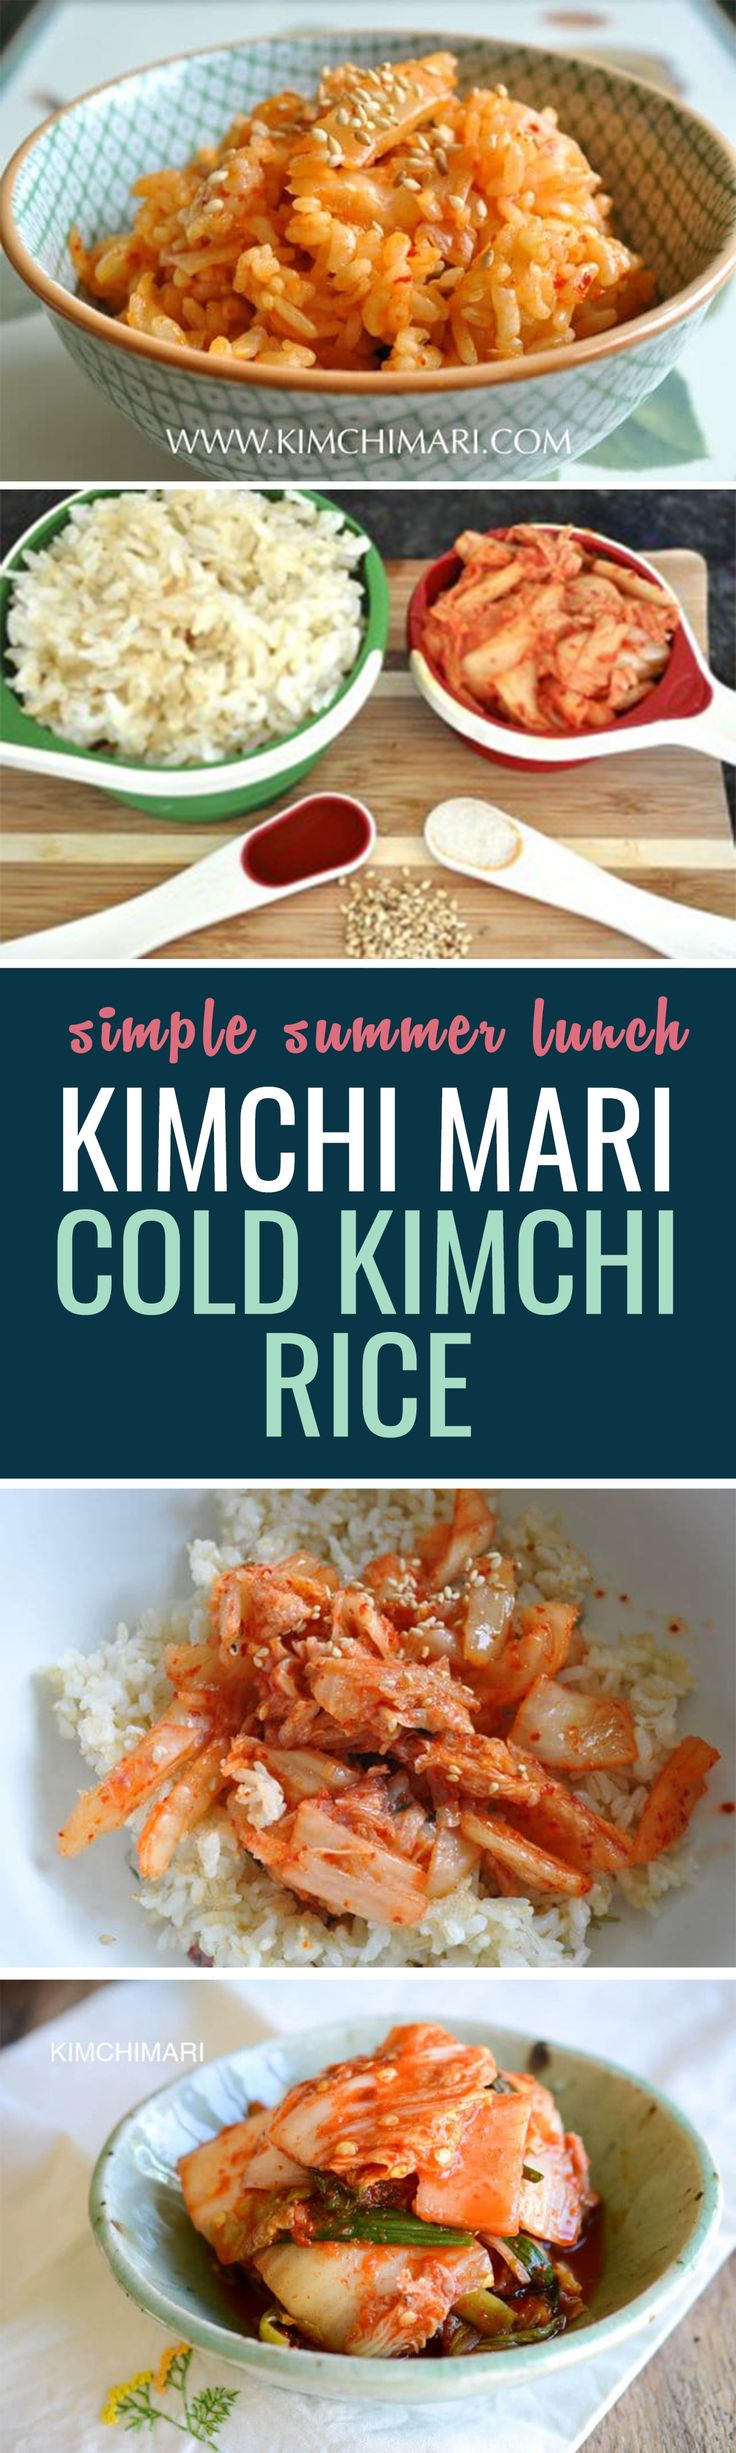 I LOVE how easy this is to make and how light and refreshing it is. I used to make this all the time when I lived in Korea. And thus, this now inspired me to name my blog domain – Kimchimari.com!